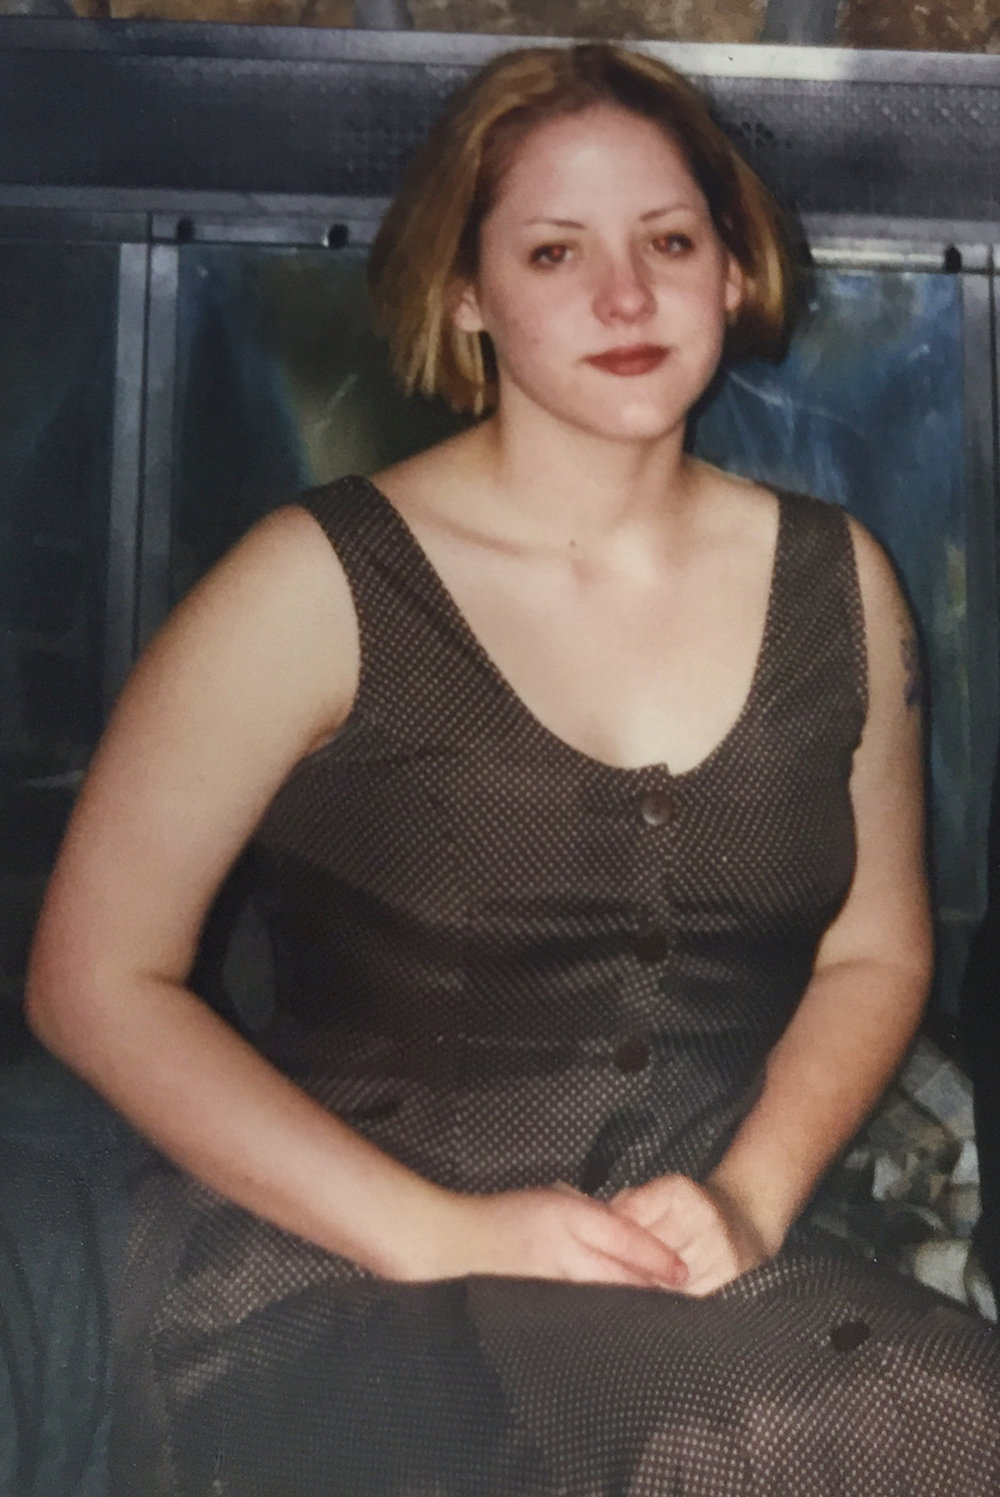 Teenage Kirsten. This photo was taken shortly after the rapes.